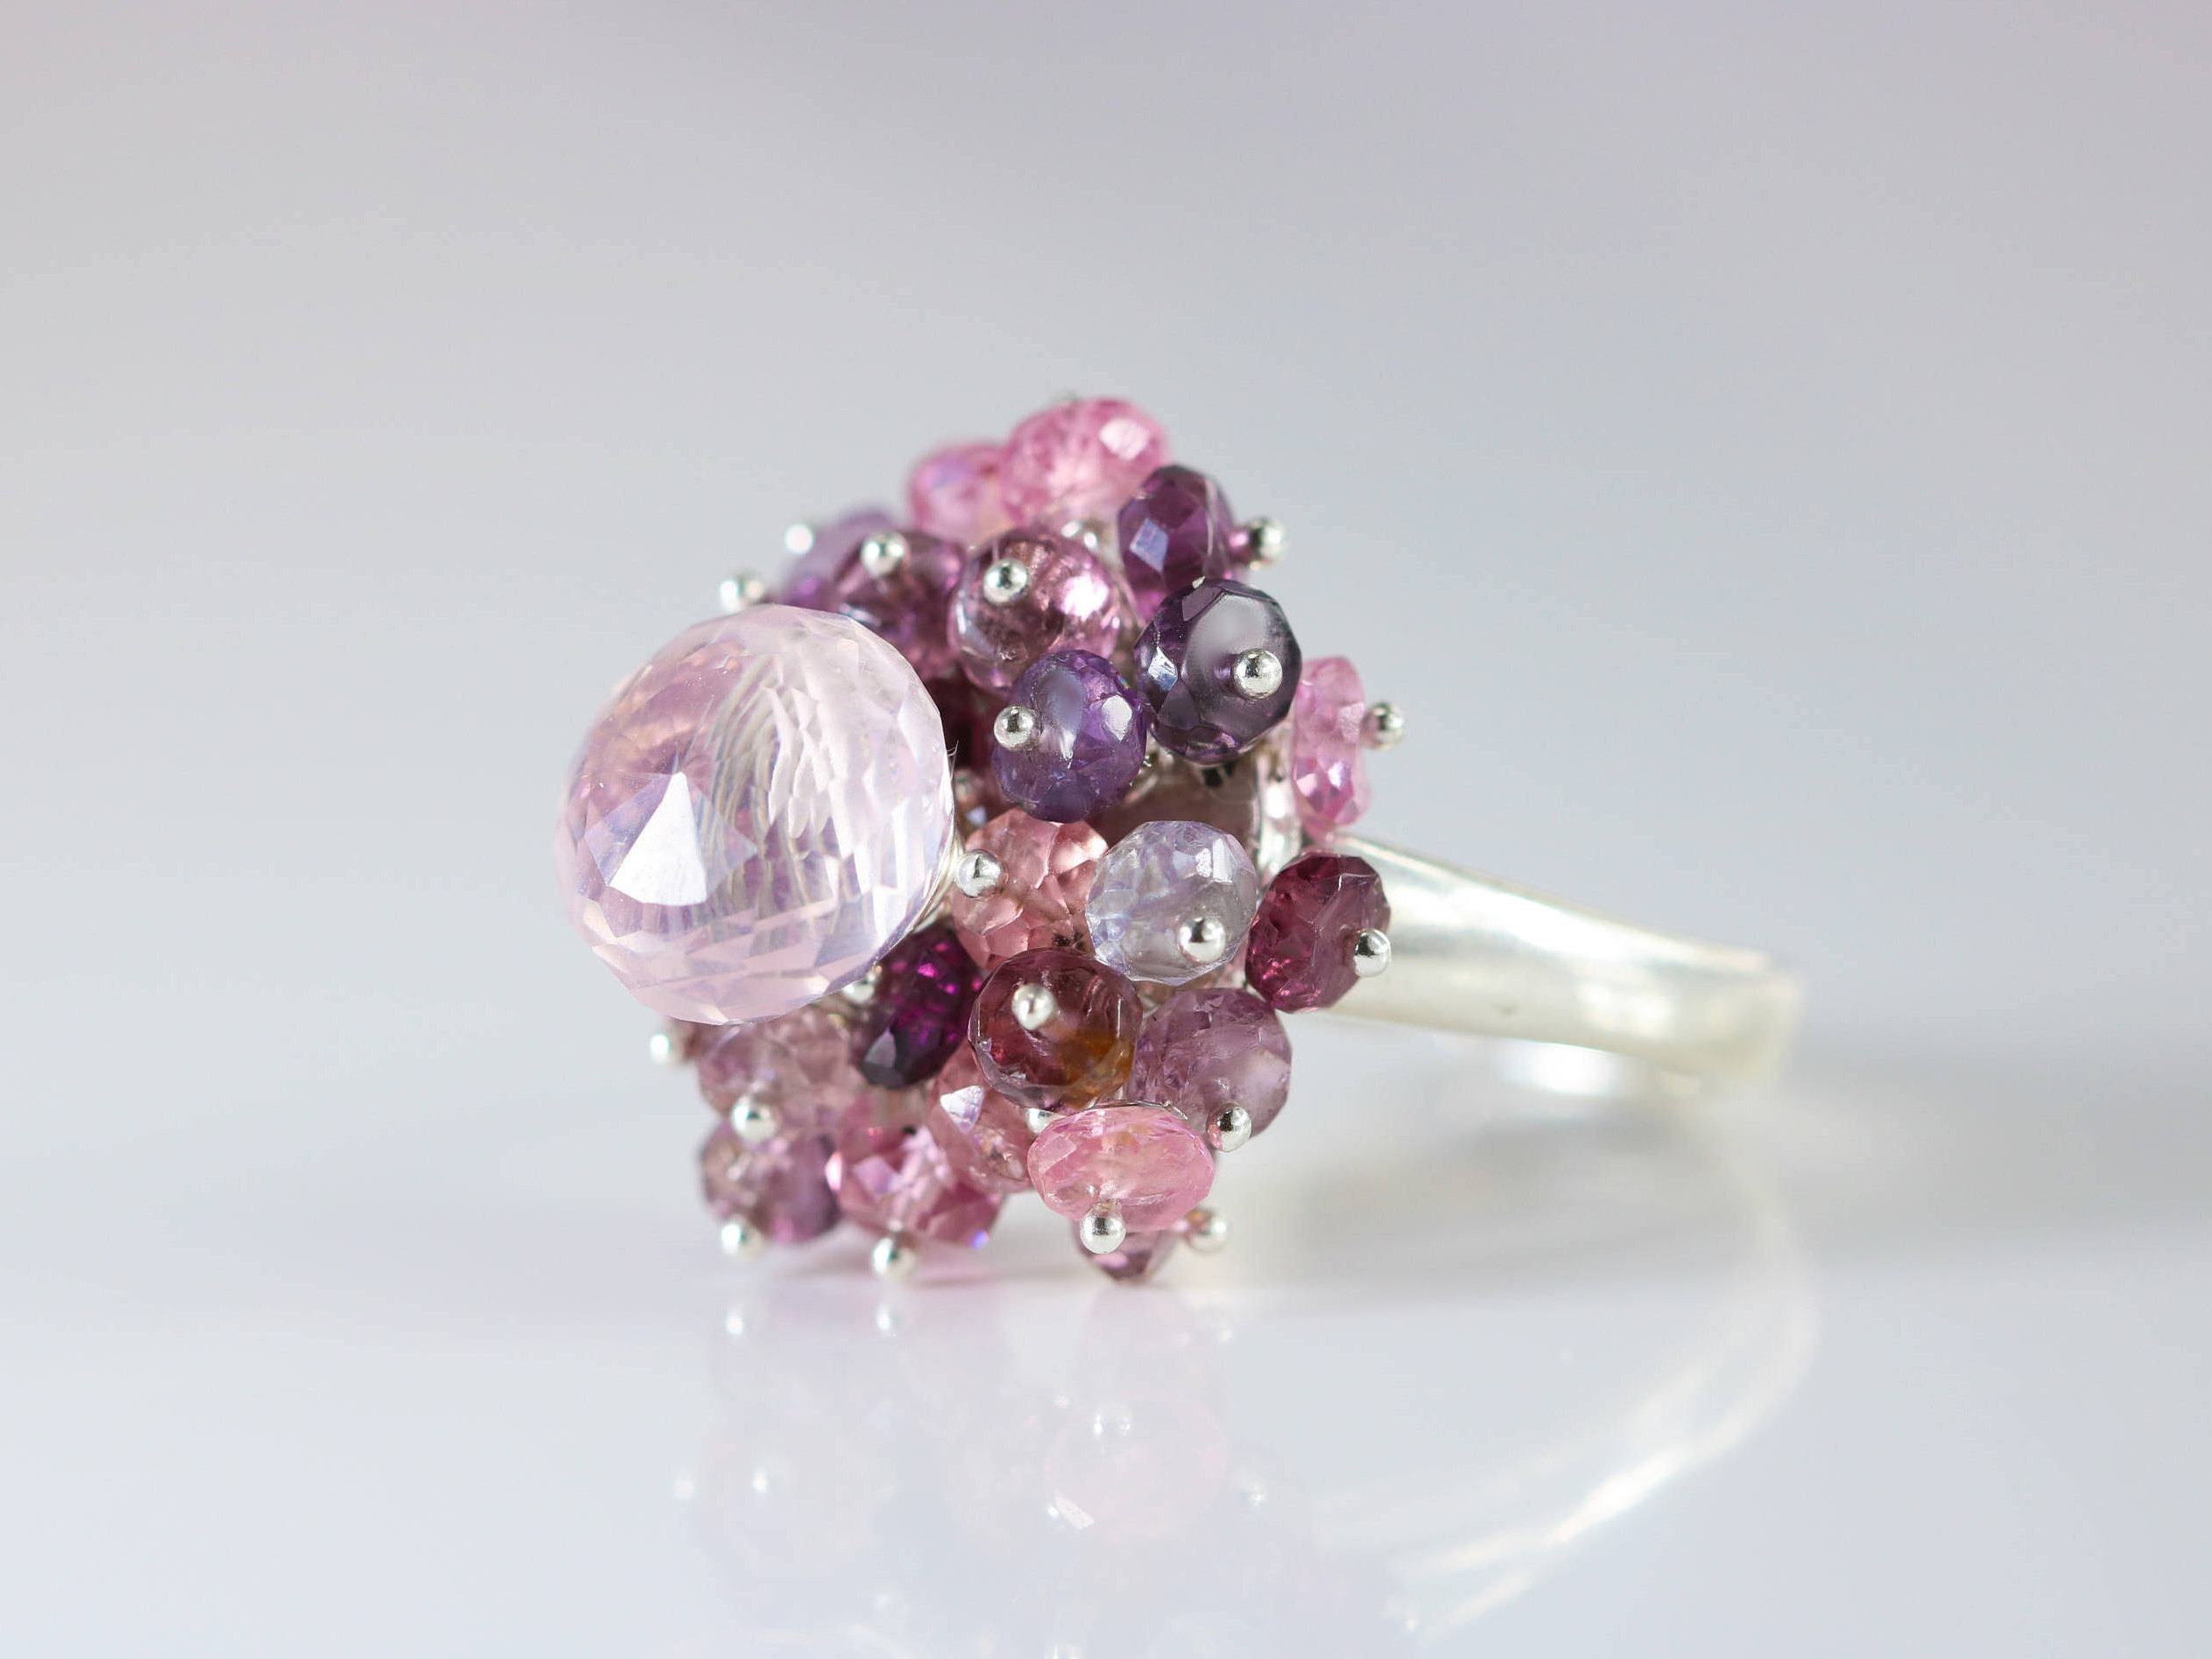 quartz elestial unique ring piece rings rose giardinoblu jewellery milan products